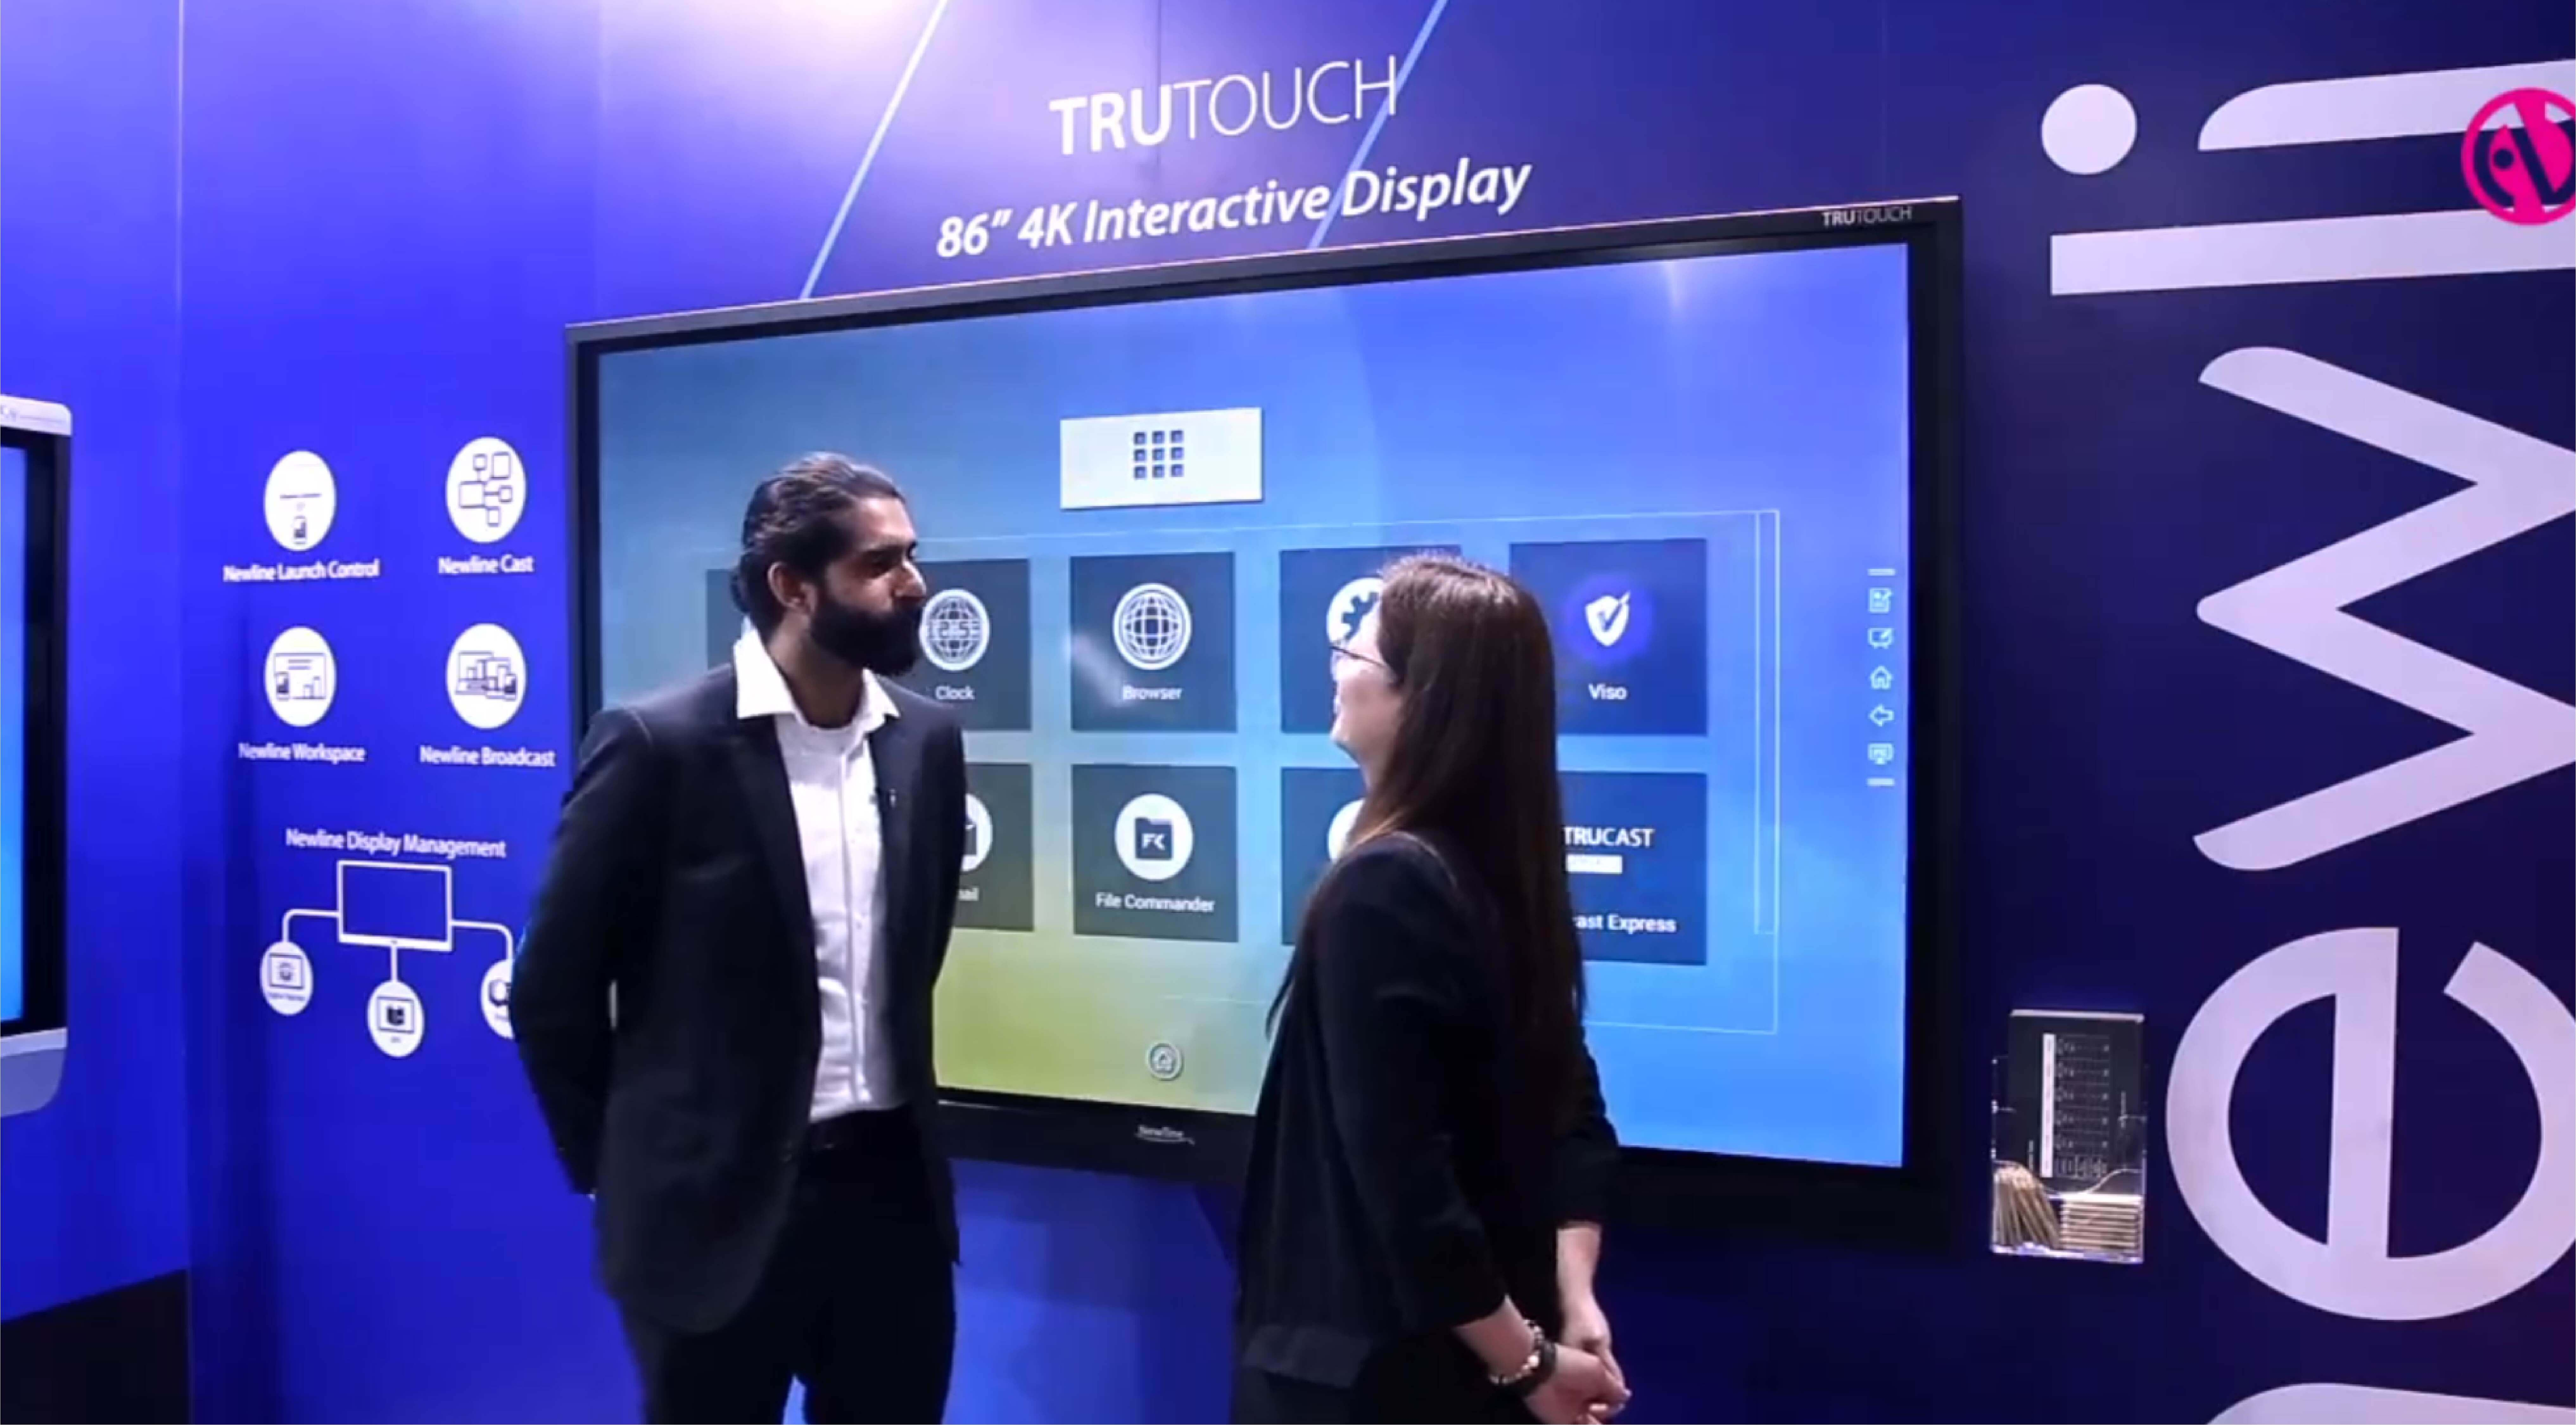 people interacting on touch screen